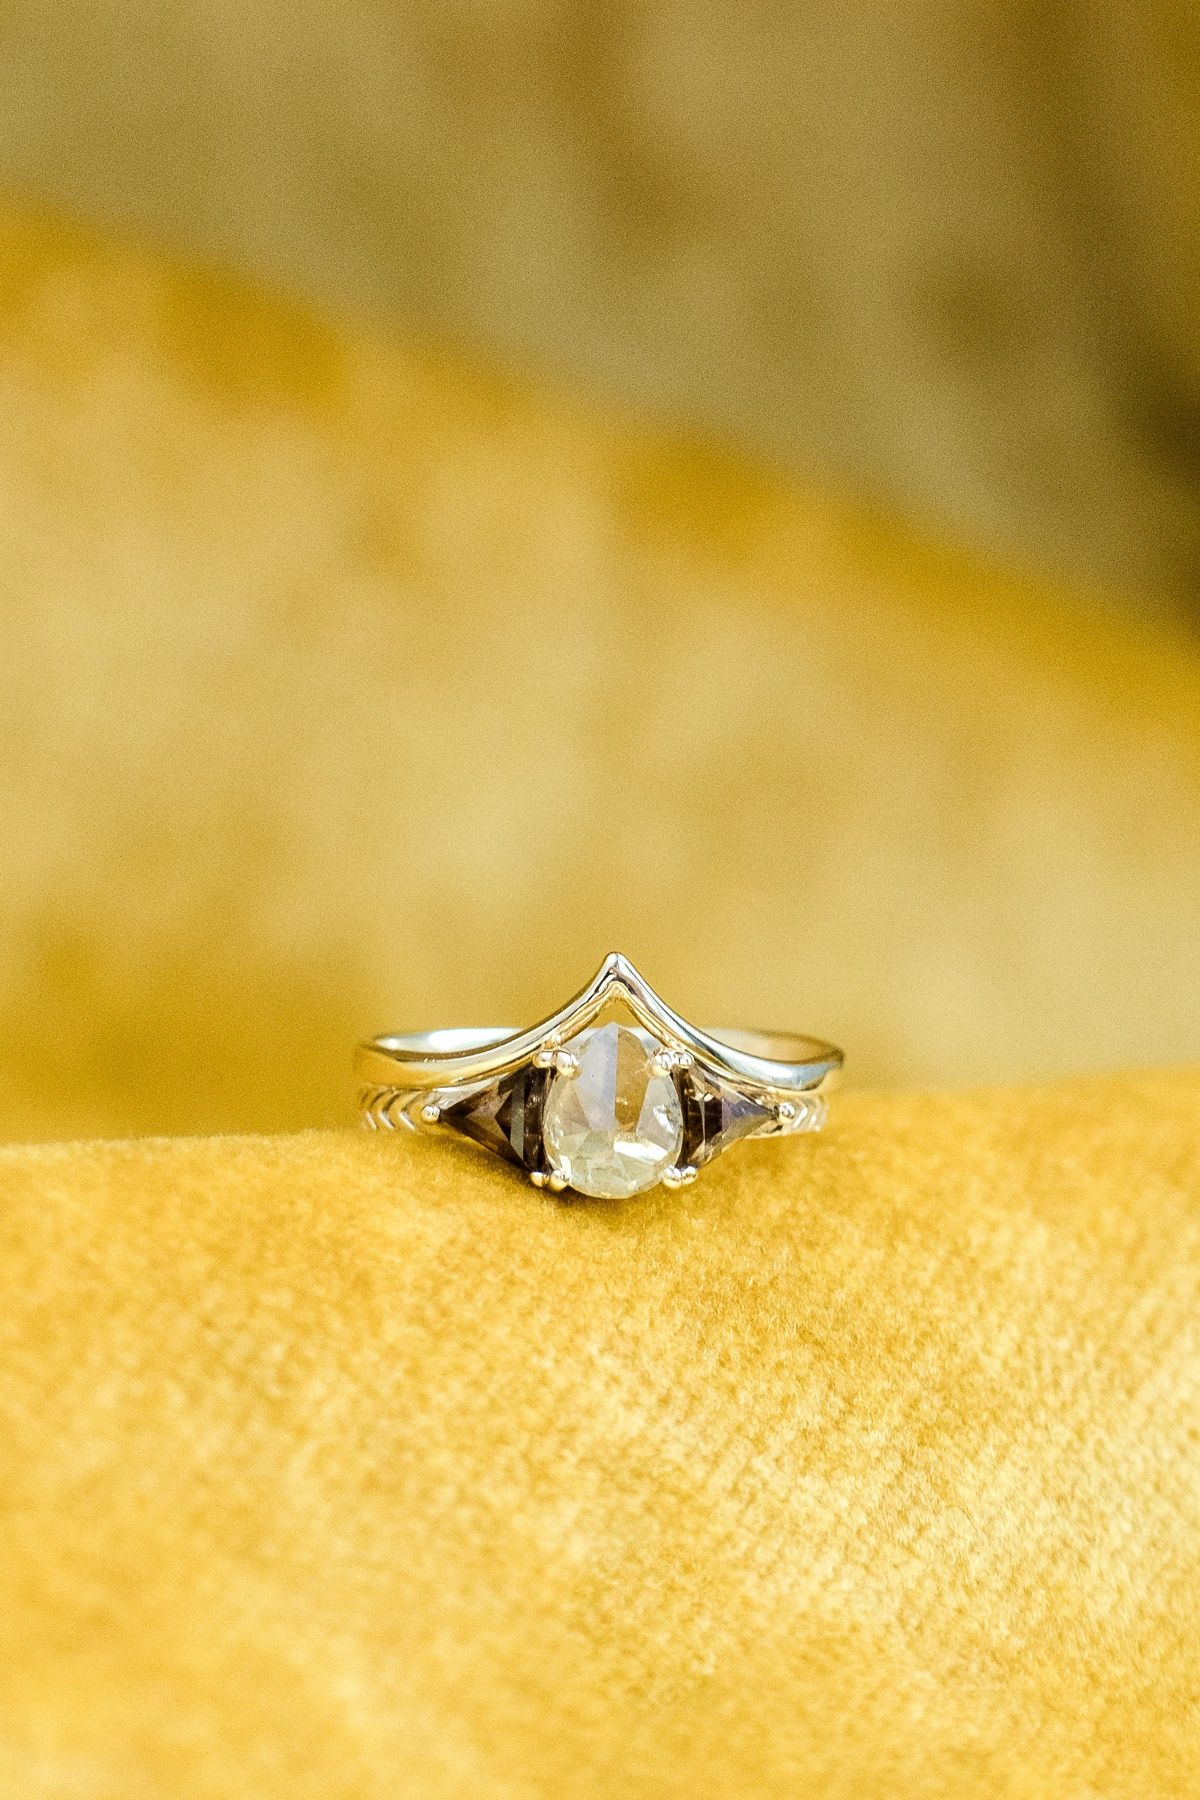 Inspiration Pittsburgh Wedding Ideas From Burgh Brides In 2020 Wedding Rings Engagement Wedding Rings Unique Wedding Ring Designs